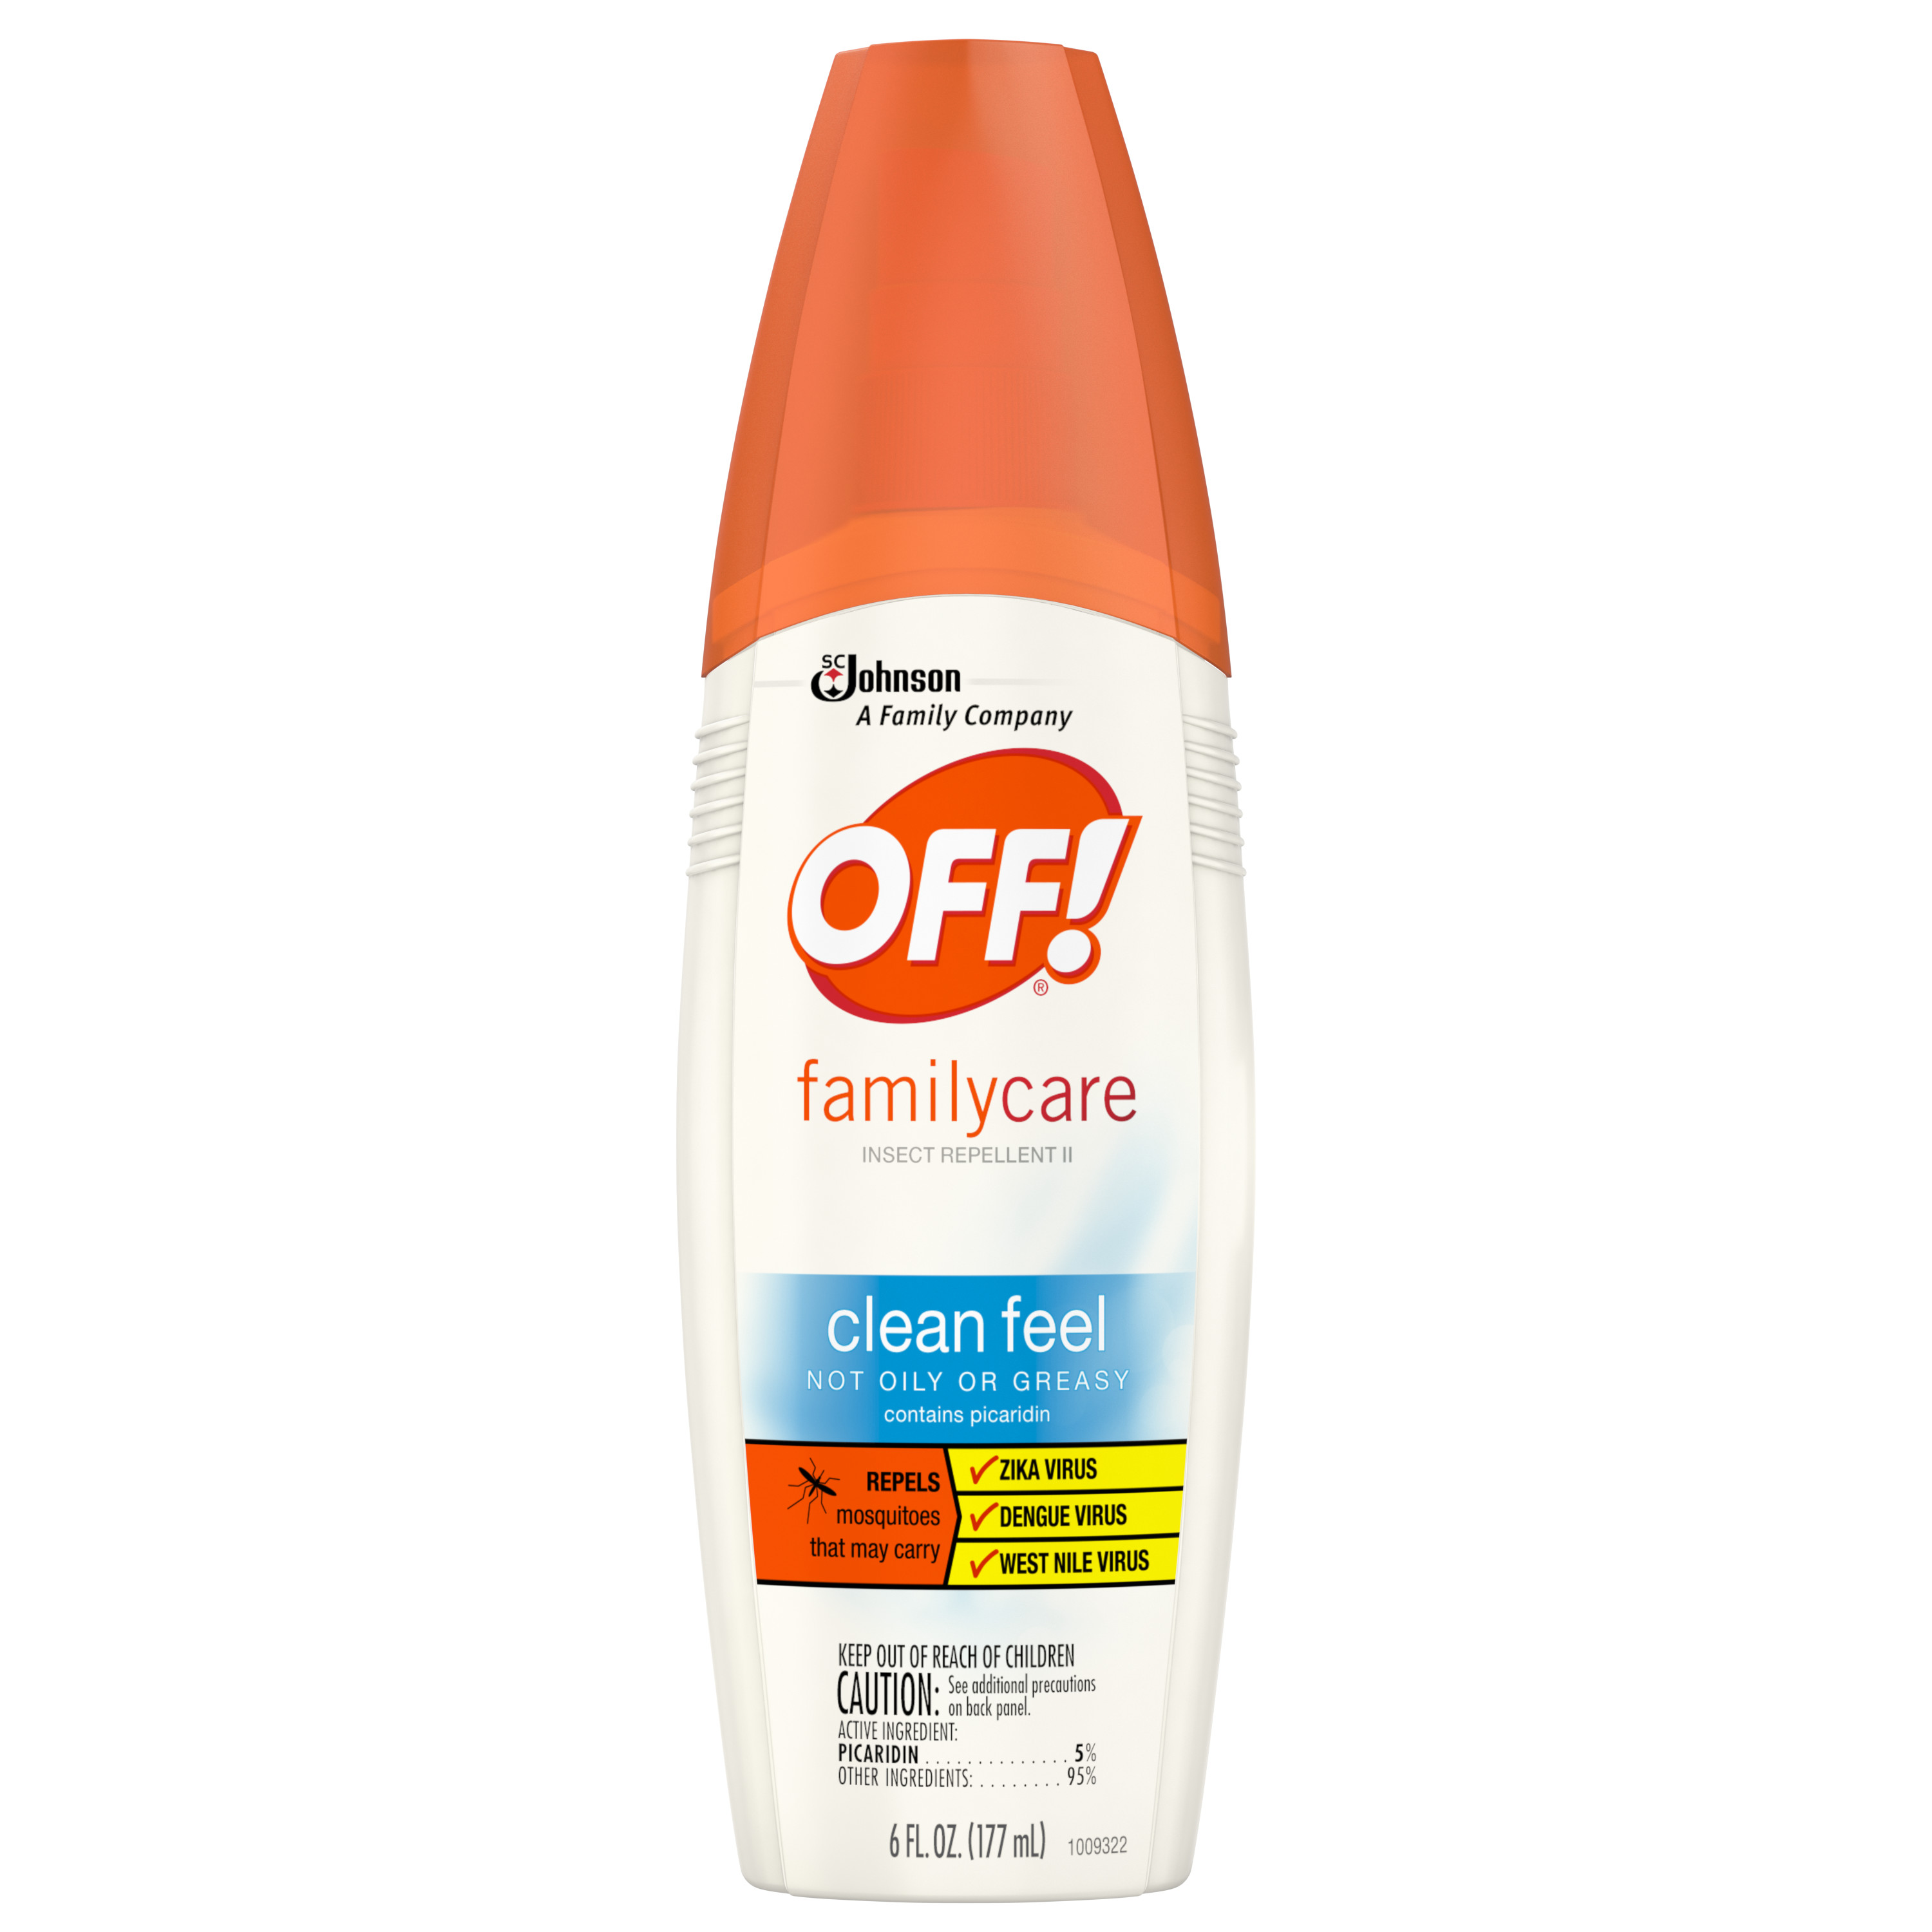 OFF! FamilyCare Insect Repellent II Clean Feel, 6 Fluid Ounces